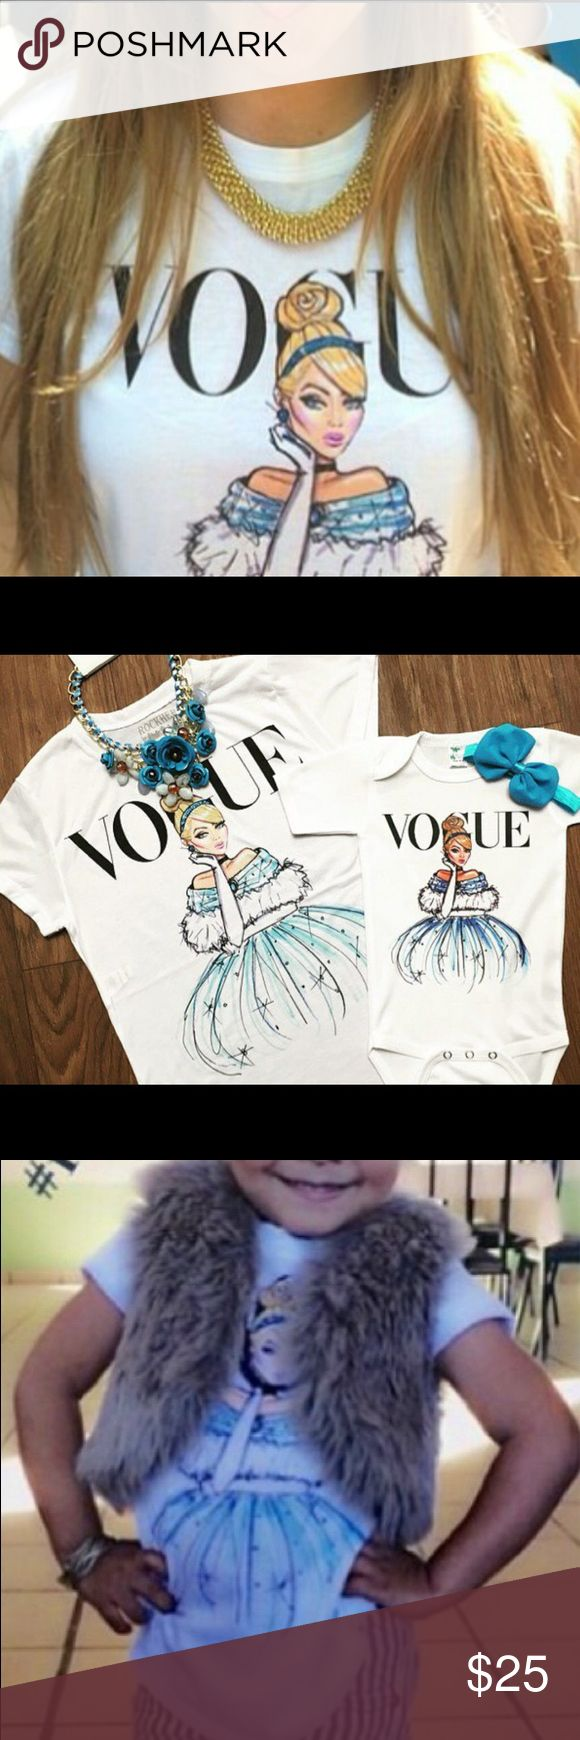 disney princess Cinderella t-shirt new, made of soft cotton blend. NO brand , these tees run fitted so i recommend going up a size or 2 depending on your liking(necklace NOT included)Listing is for only 1 tshirt. Tops Tees - Short Sleeve